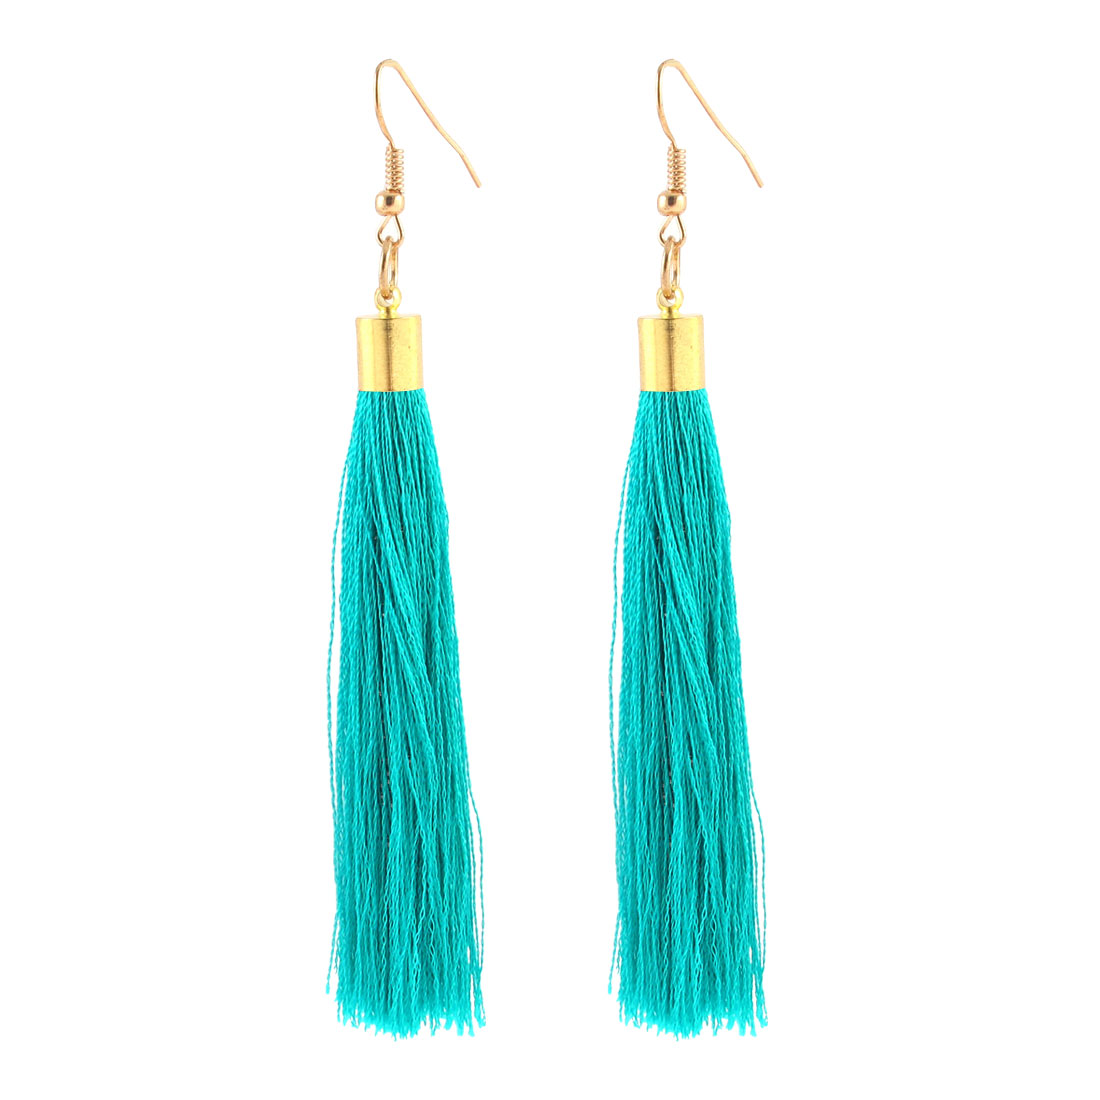 Fish Hook Long Tassels Fringed Drop Earrings Eardrop Pair Green